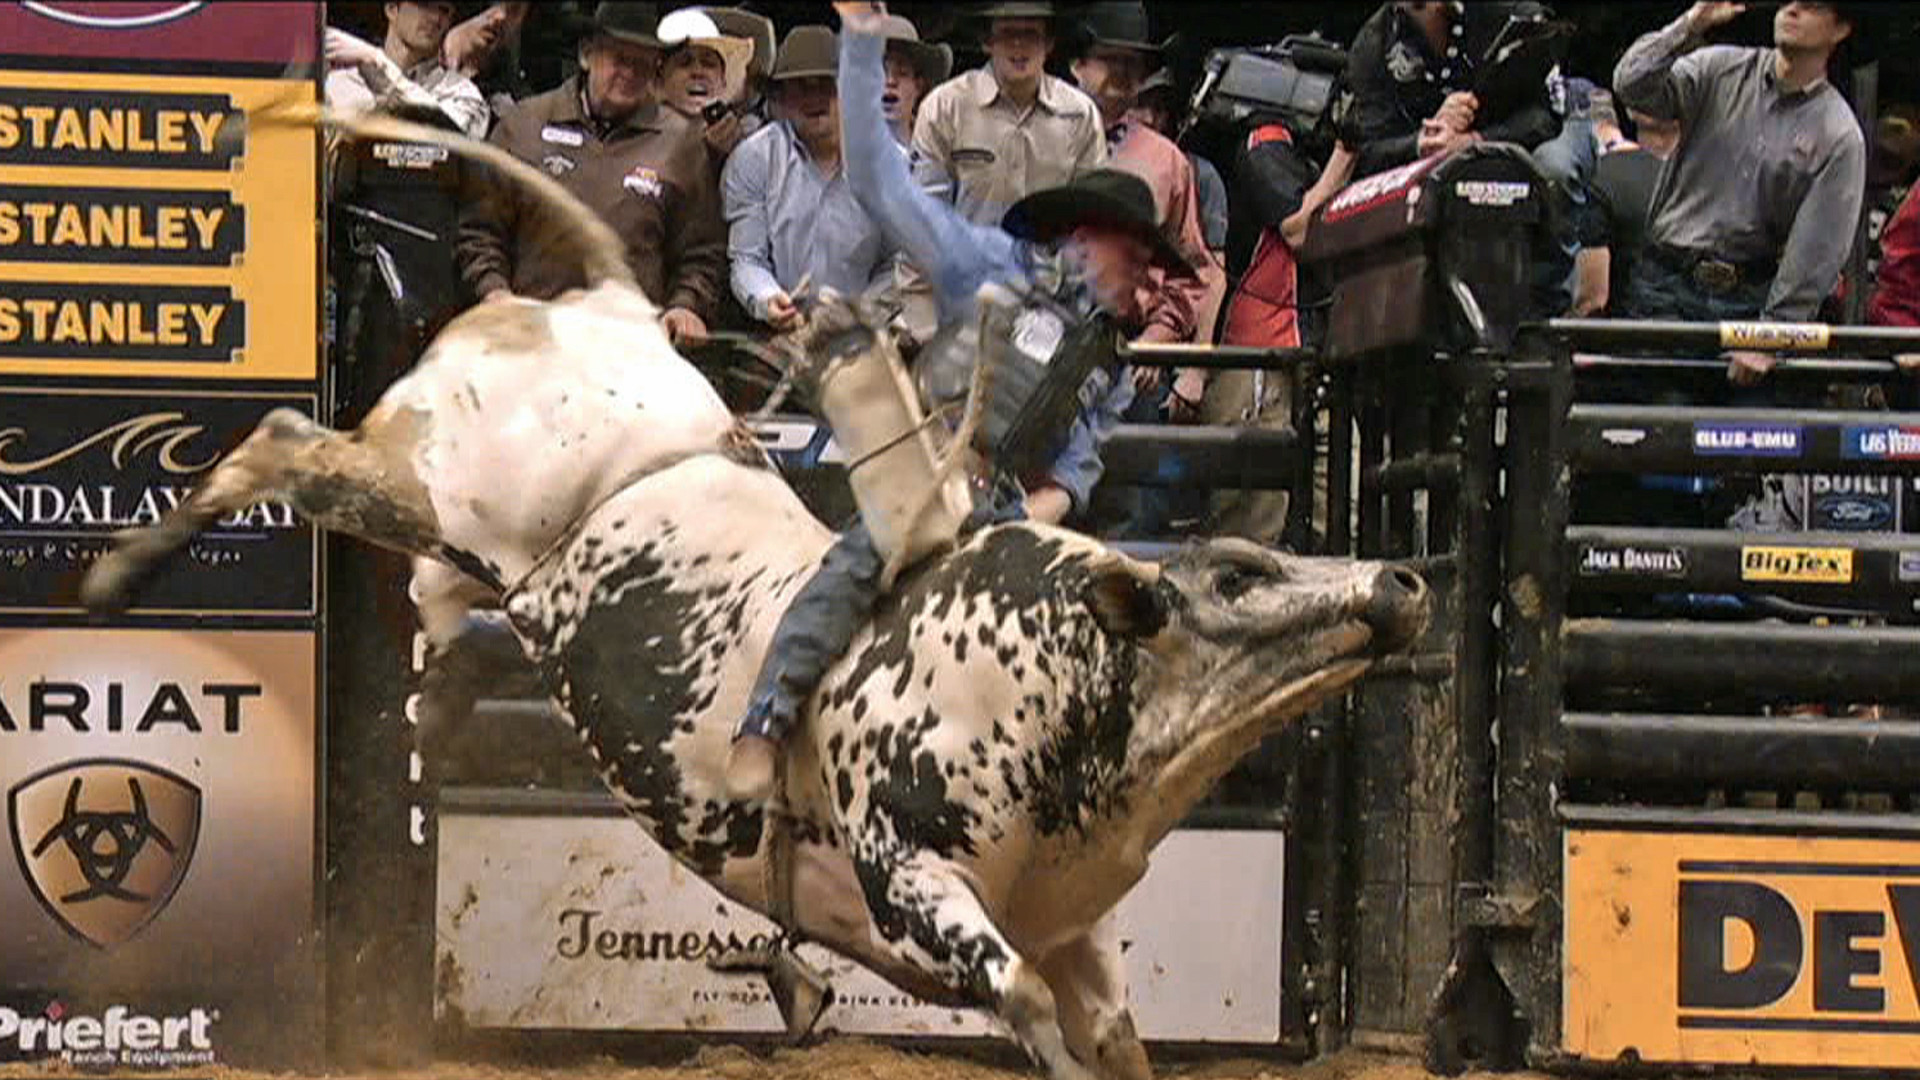 Res: 1920x1080, Pro bull riders event marks 20th year at NYC .